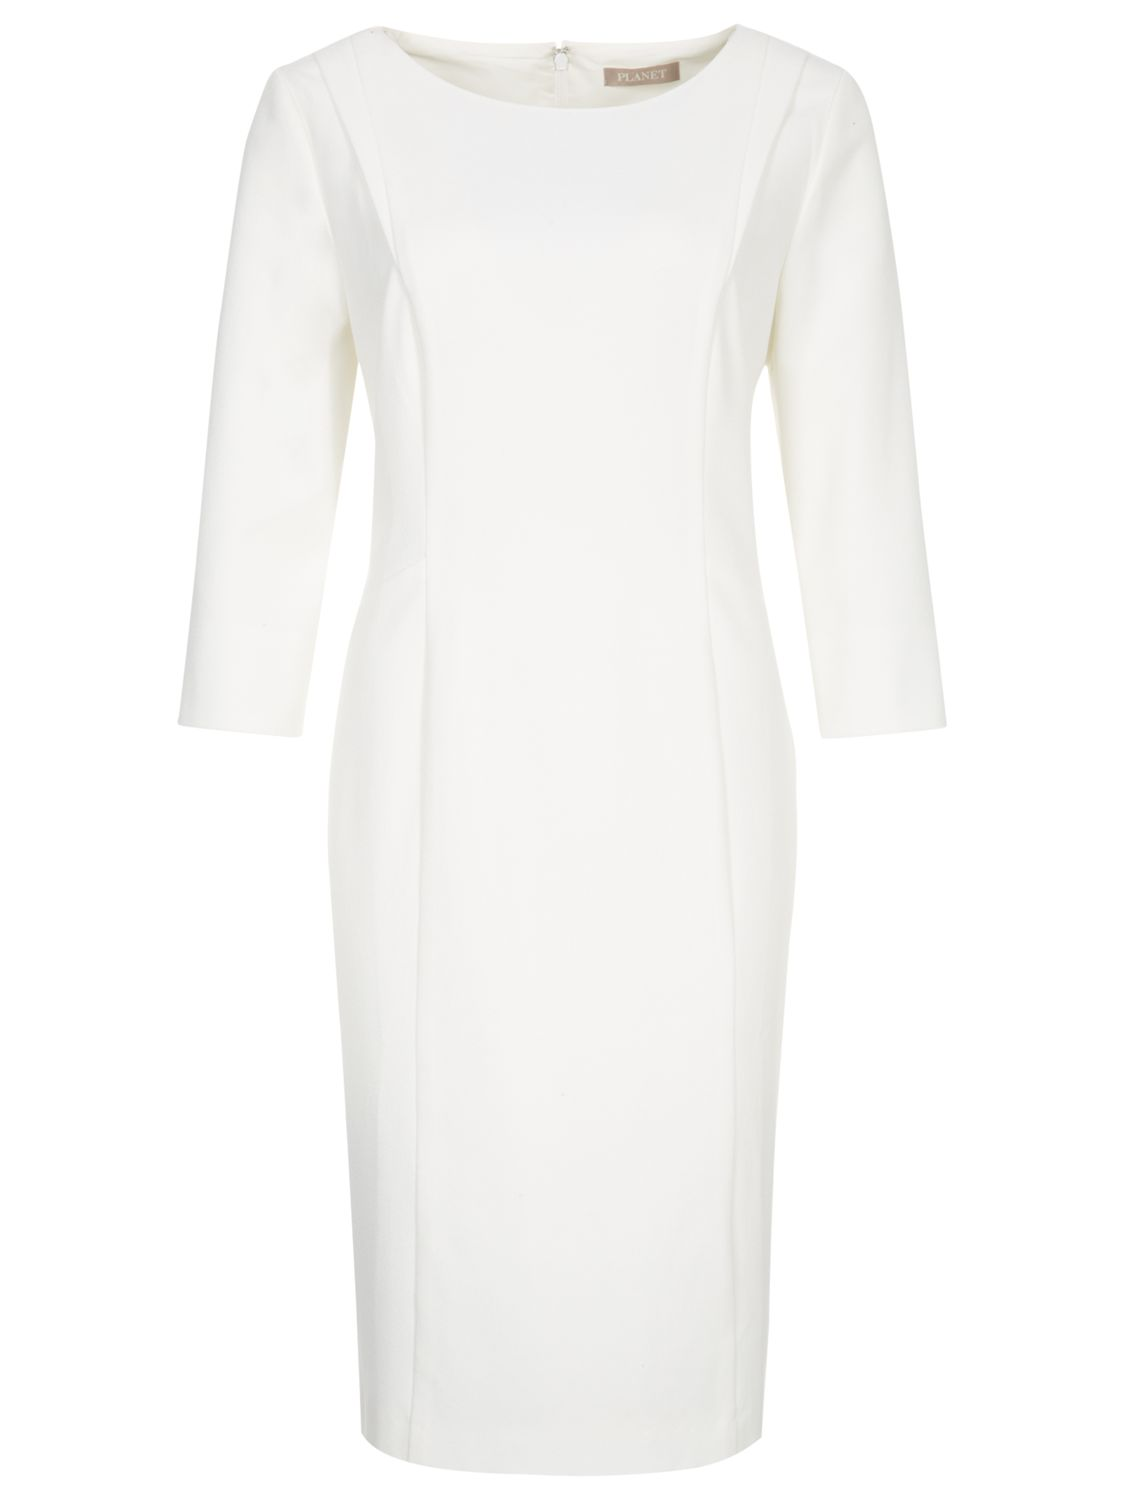 planet shift dress ivory, planet, shift, dress, ivory, 14|20|10|18|16, clearance, womenswear offers, womens dresses offers, women, plus size, inactive womenswear, new reductions, womens dresses, aw14 trends, suit up, special offers, 1661245